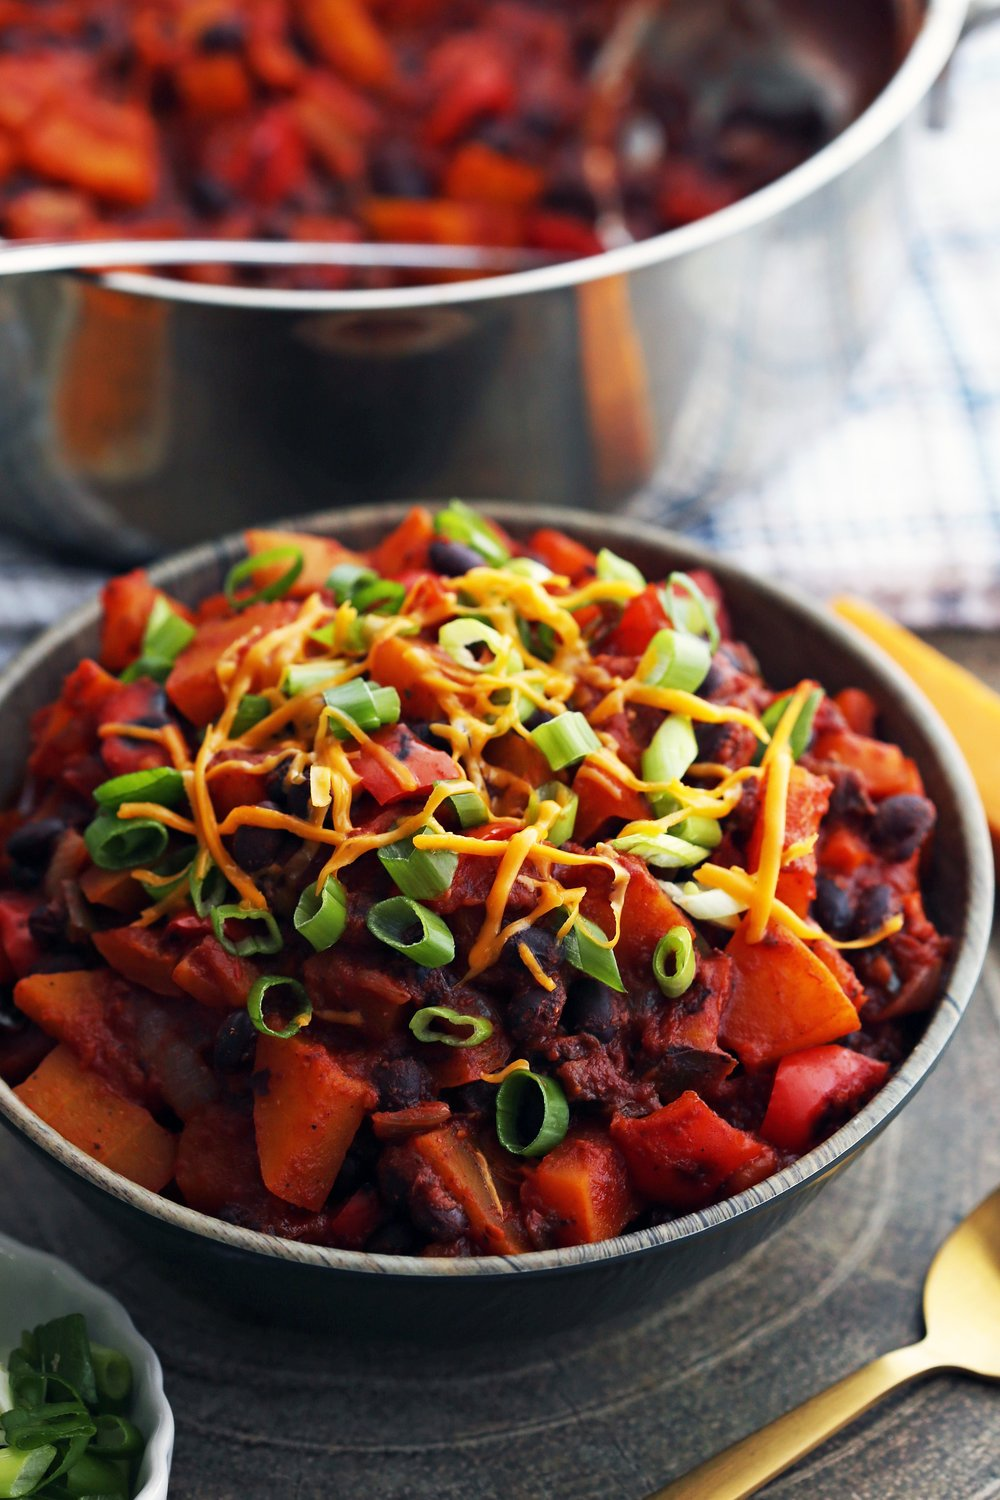 A wooden bowl containing Roasted Butternut Squash and Black Bean Chili with more chili in a large pot behind it.